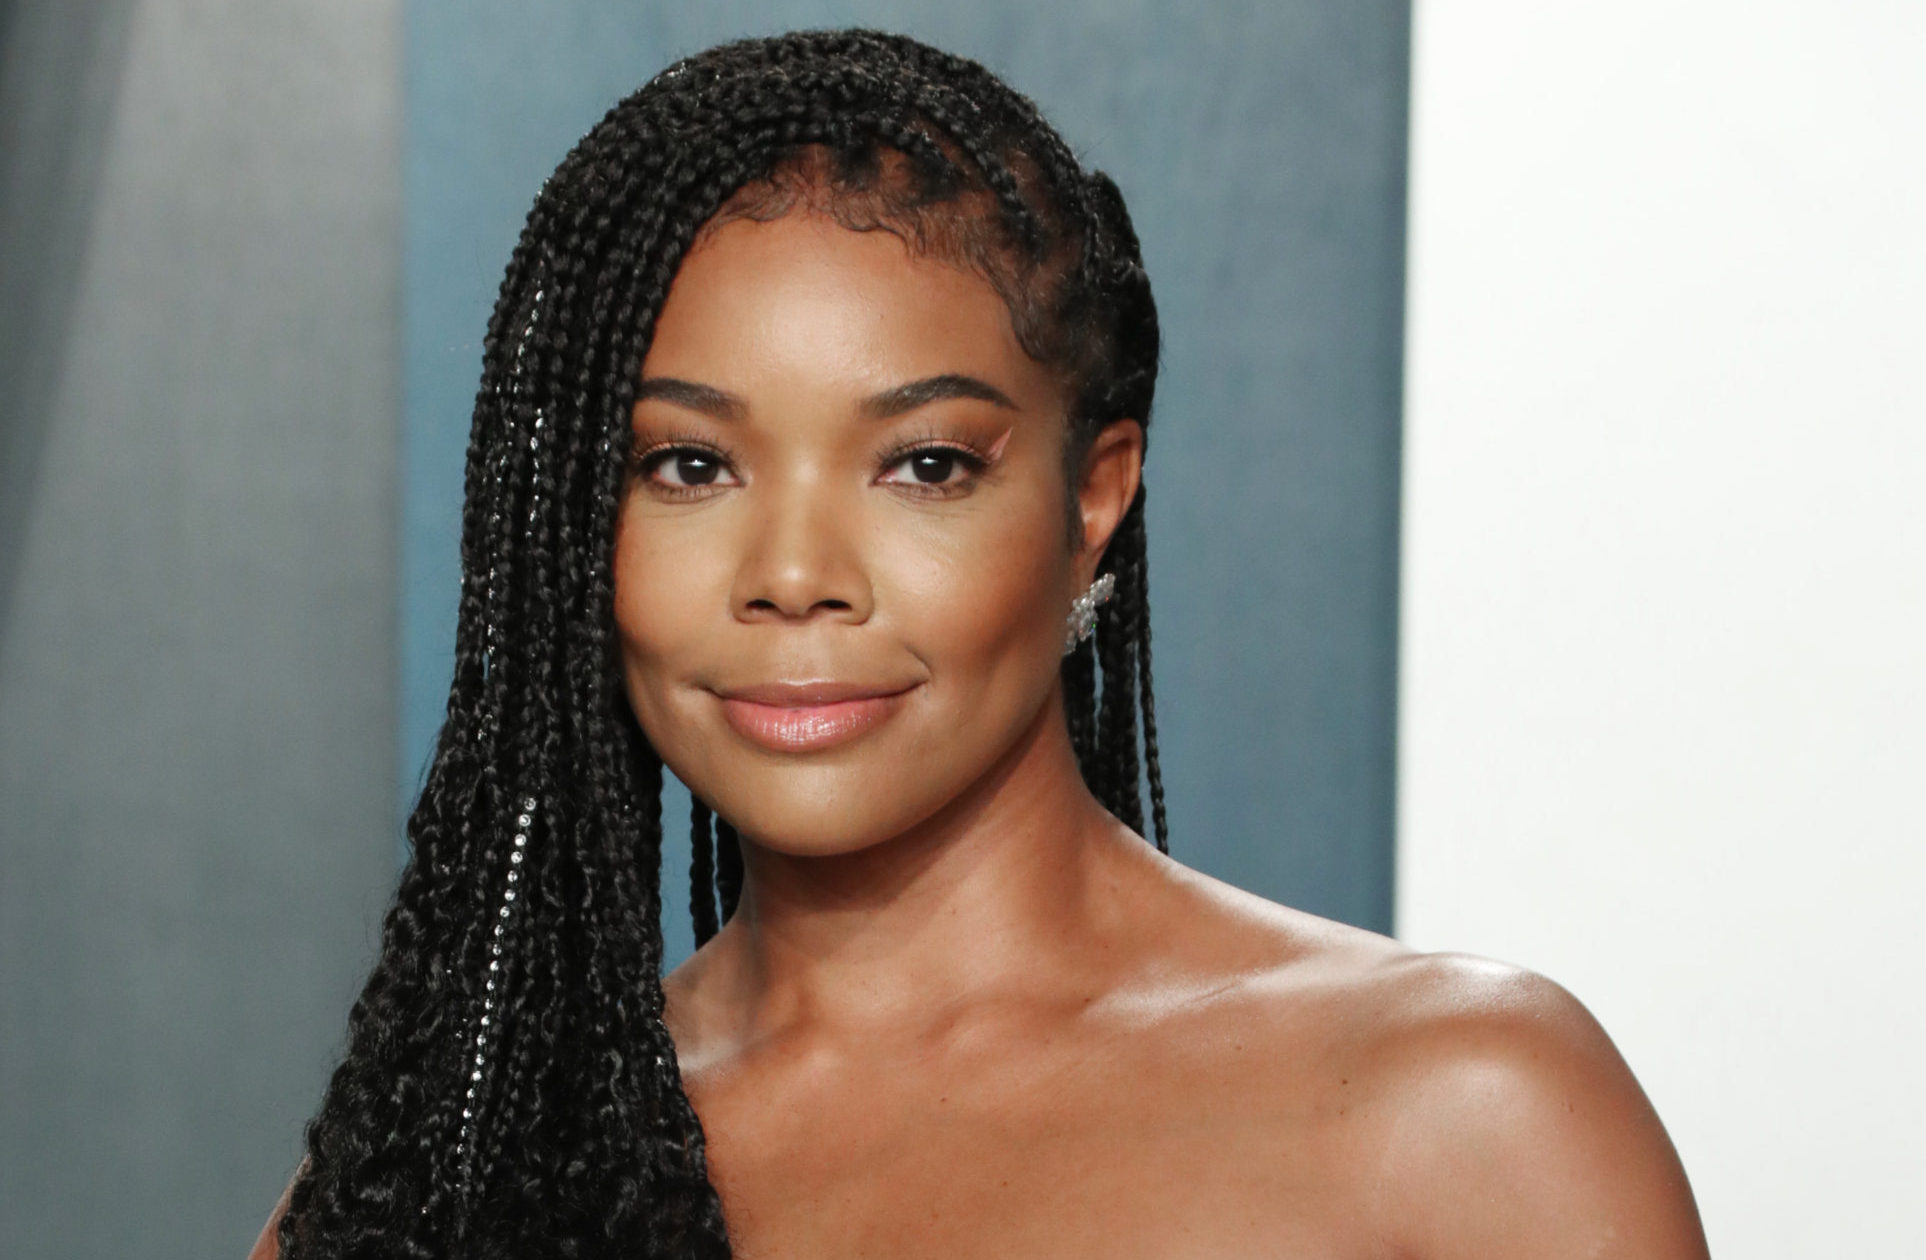 Gabrielle Union and 'America's Got Talent' Reach 'Amicable' Settlement Over Workplace Toxicity Claims